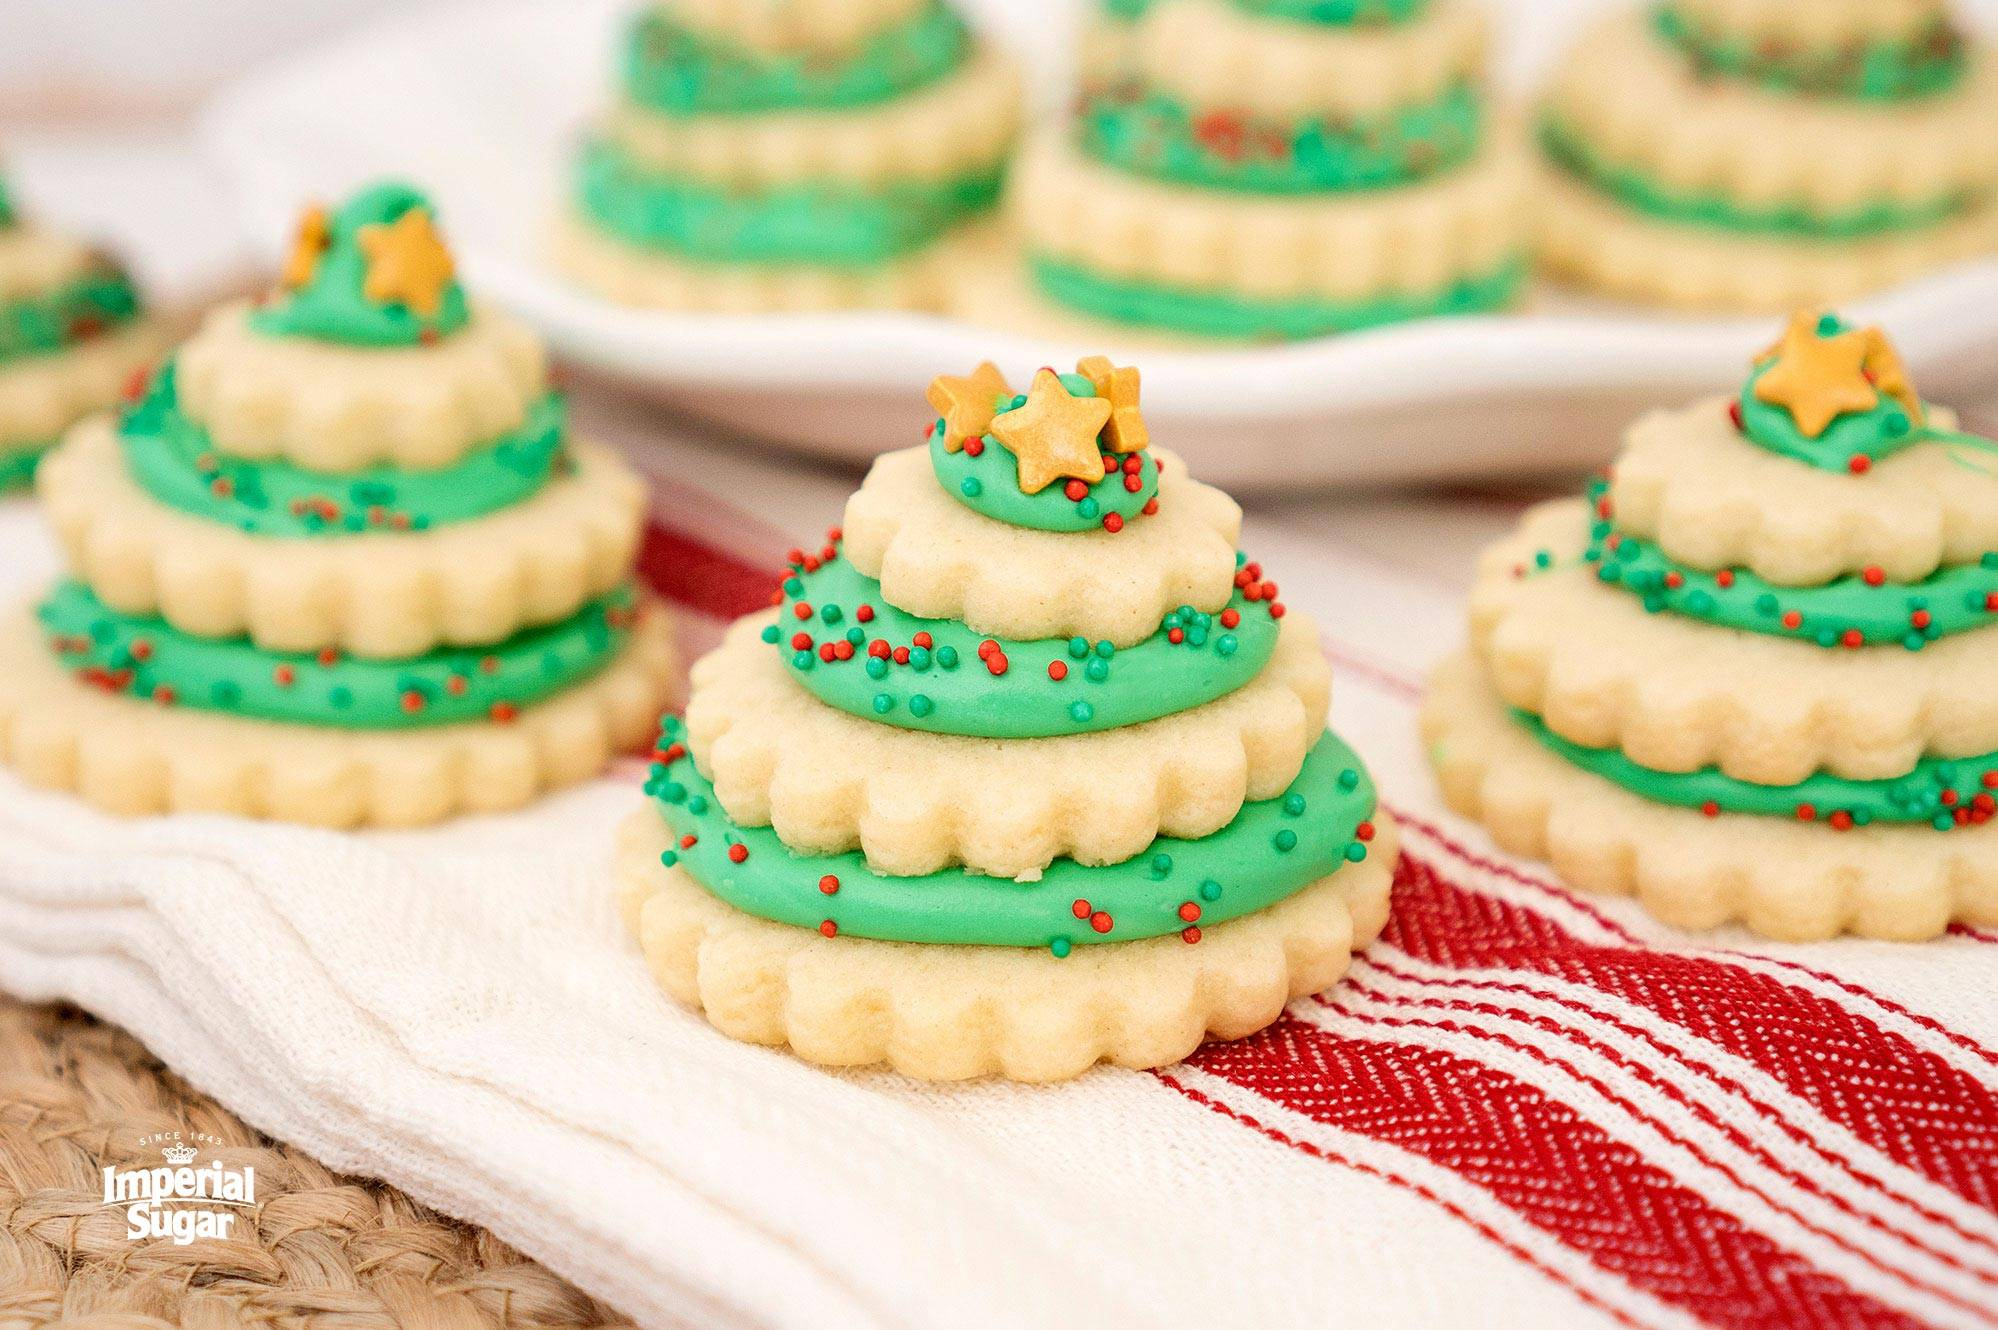 Best Sugar Cookie Recipes For Building